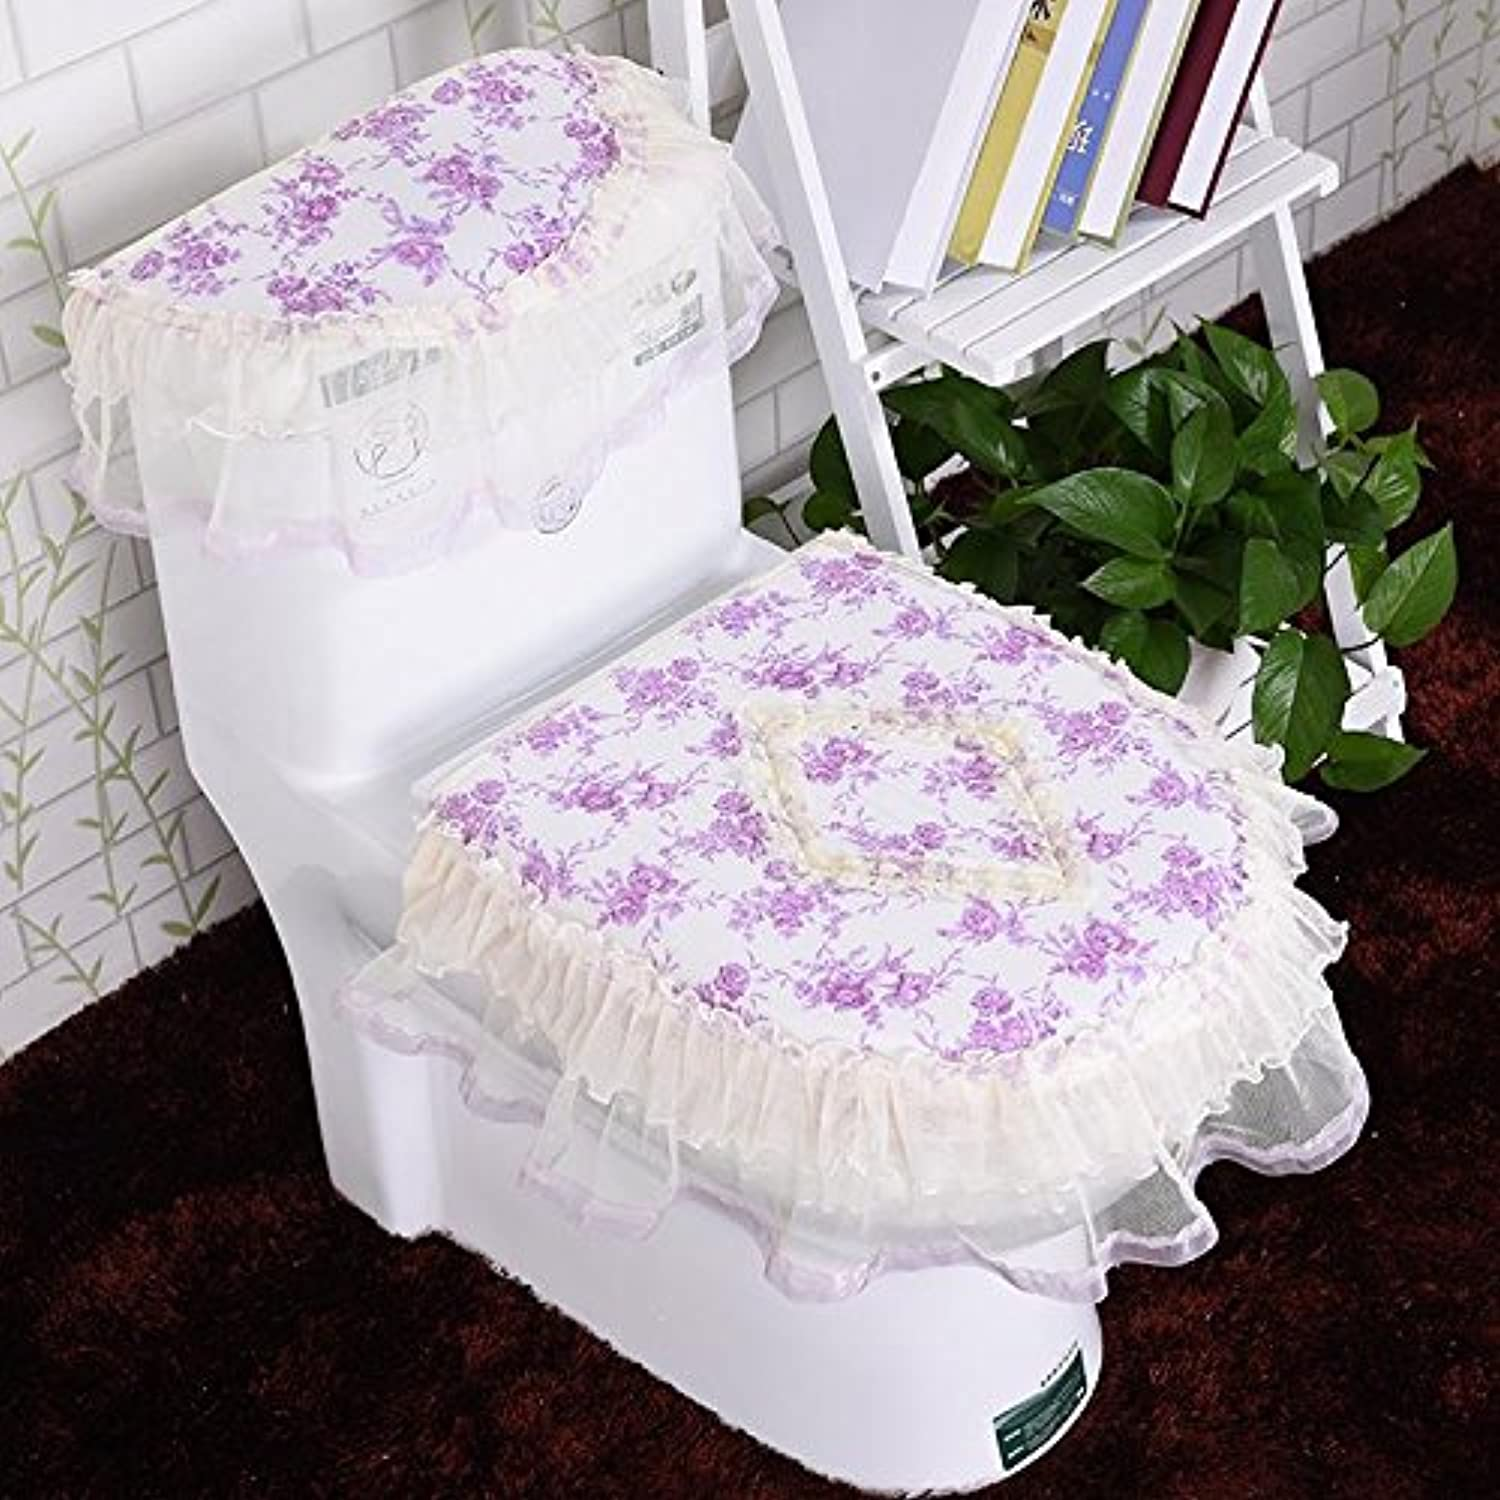 WANG-shunlida Toilet Cushion Zipper Antibacterial Toilet Set Three Piece Cloth Art A Thousand Beauties